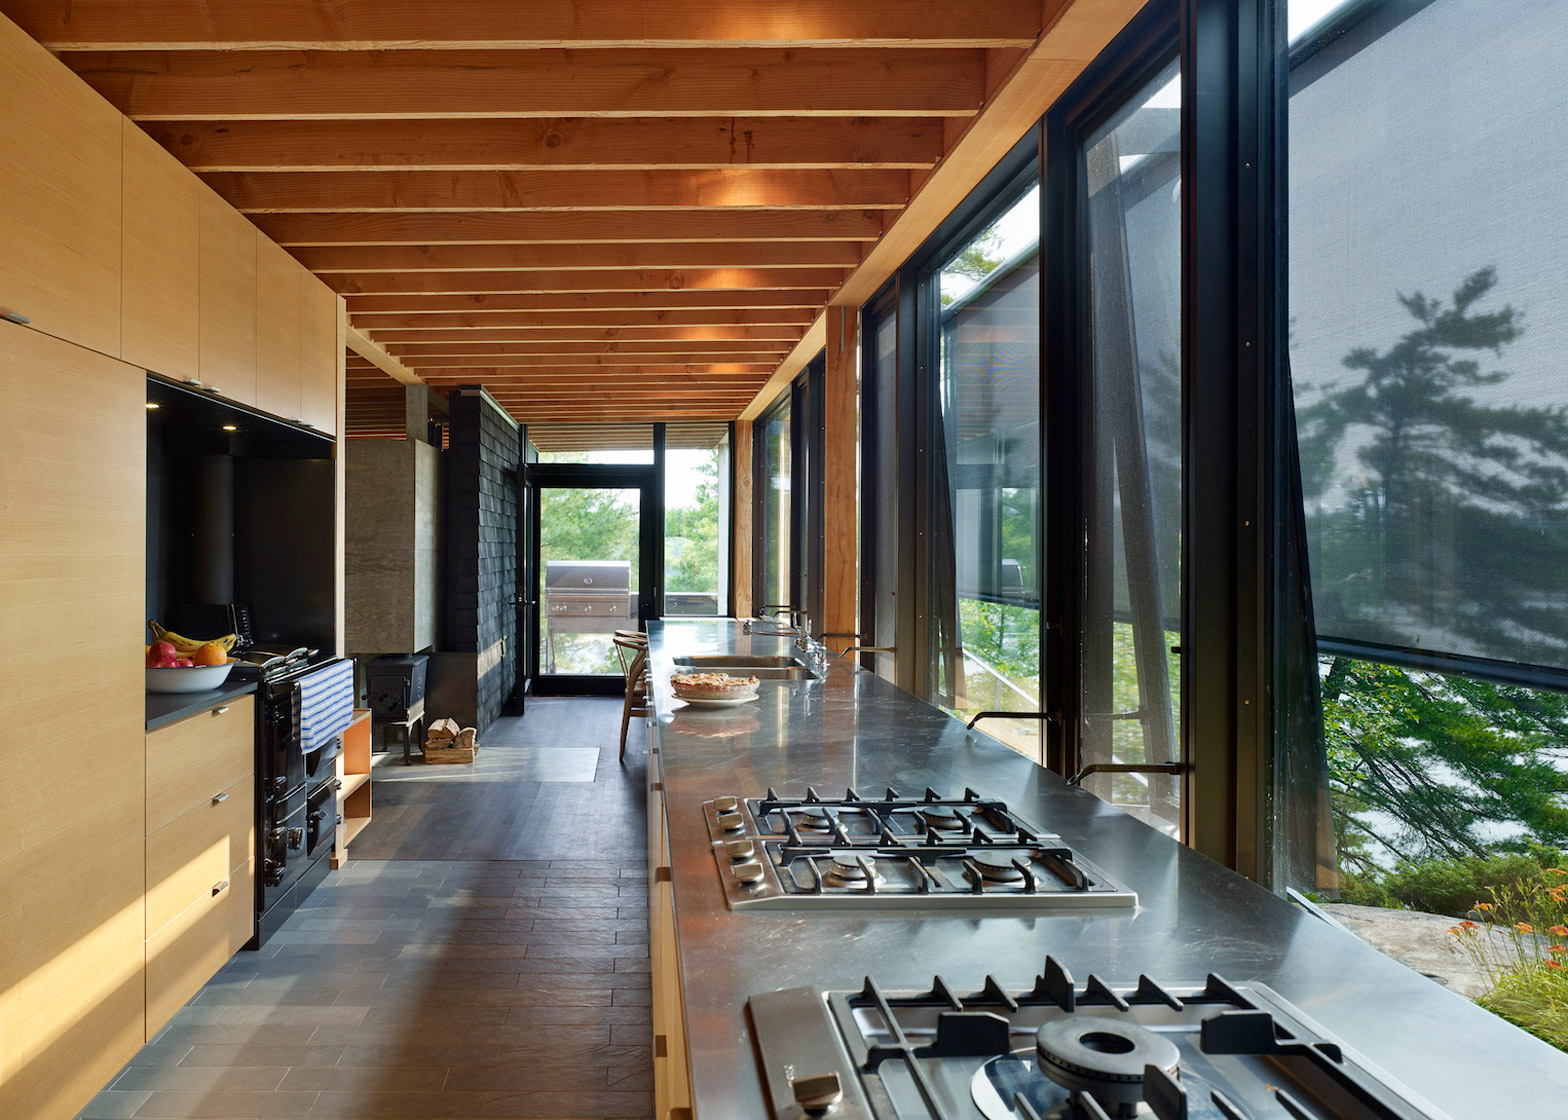 Go Home Cabin, holiday home architecture in Ontario, Canada by Ian Macdonald Architect